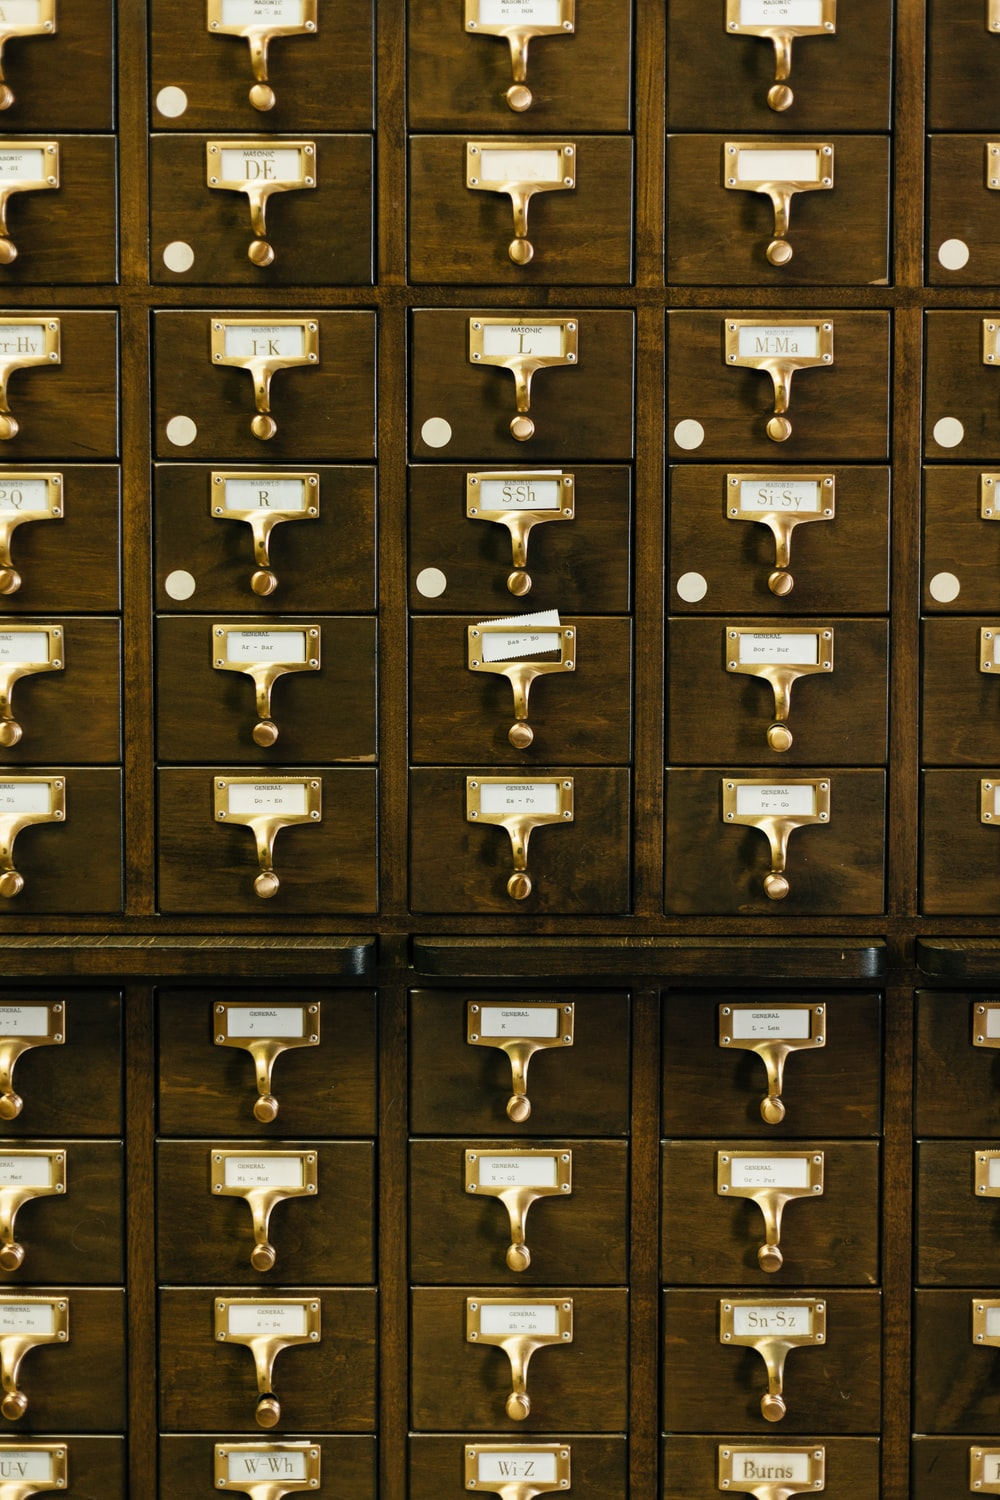 close-up photography of brown wooden card catalog